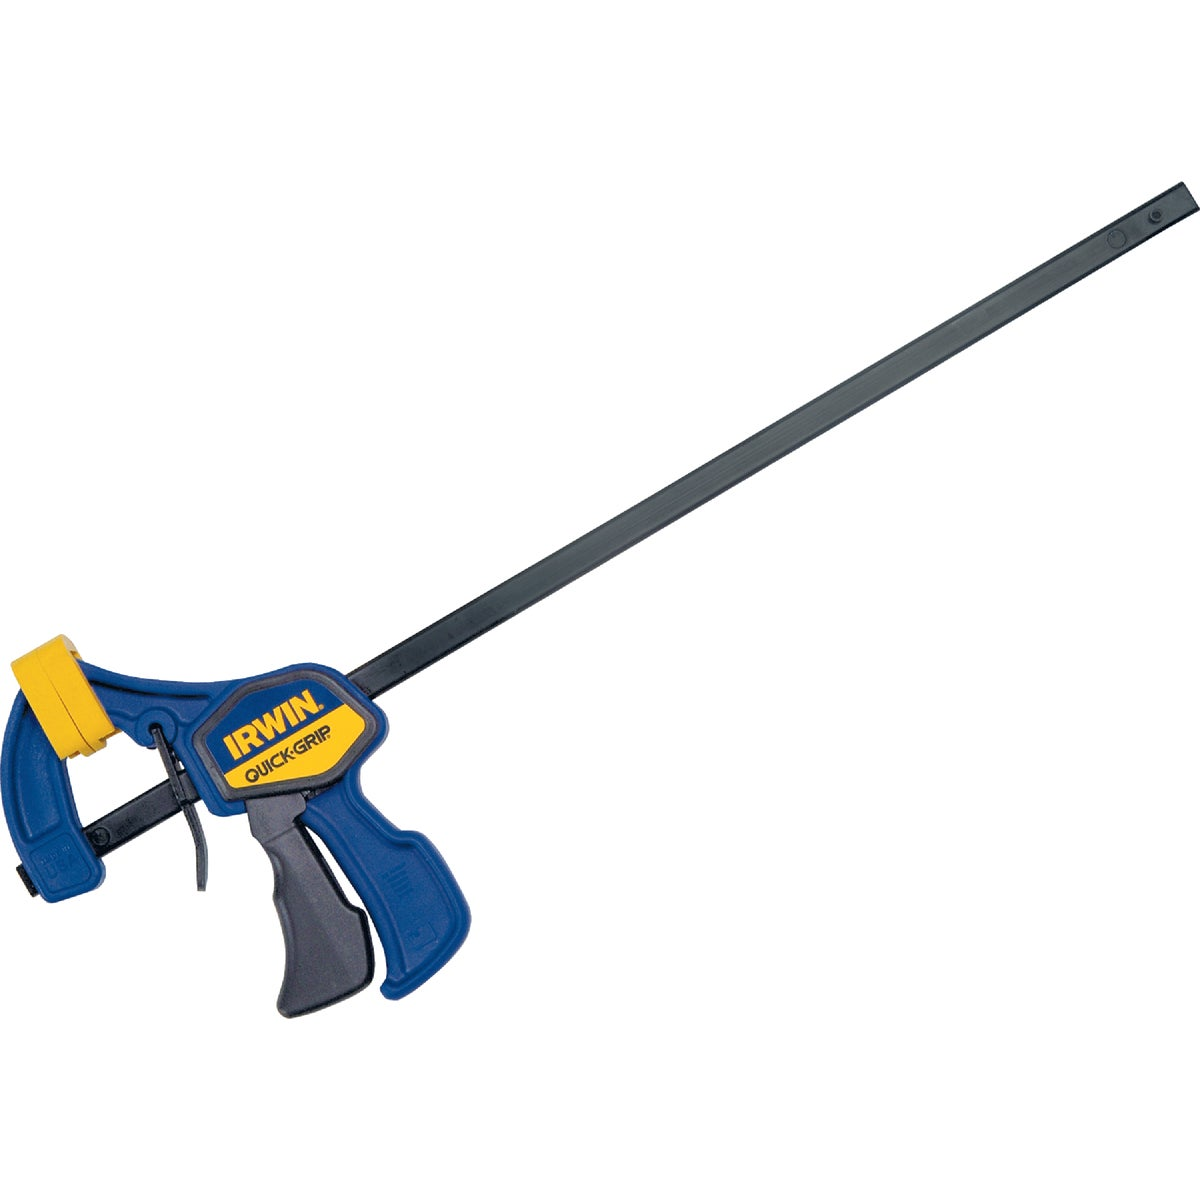 "12"" MINI BAR CLAMP - 5412 by Irwin Industr Tool"